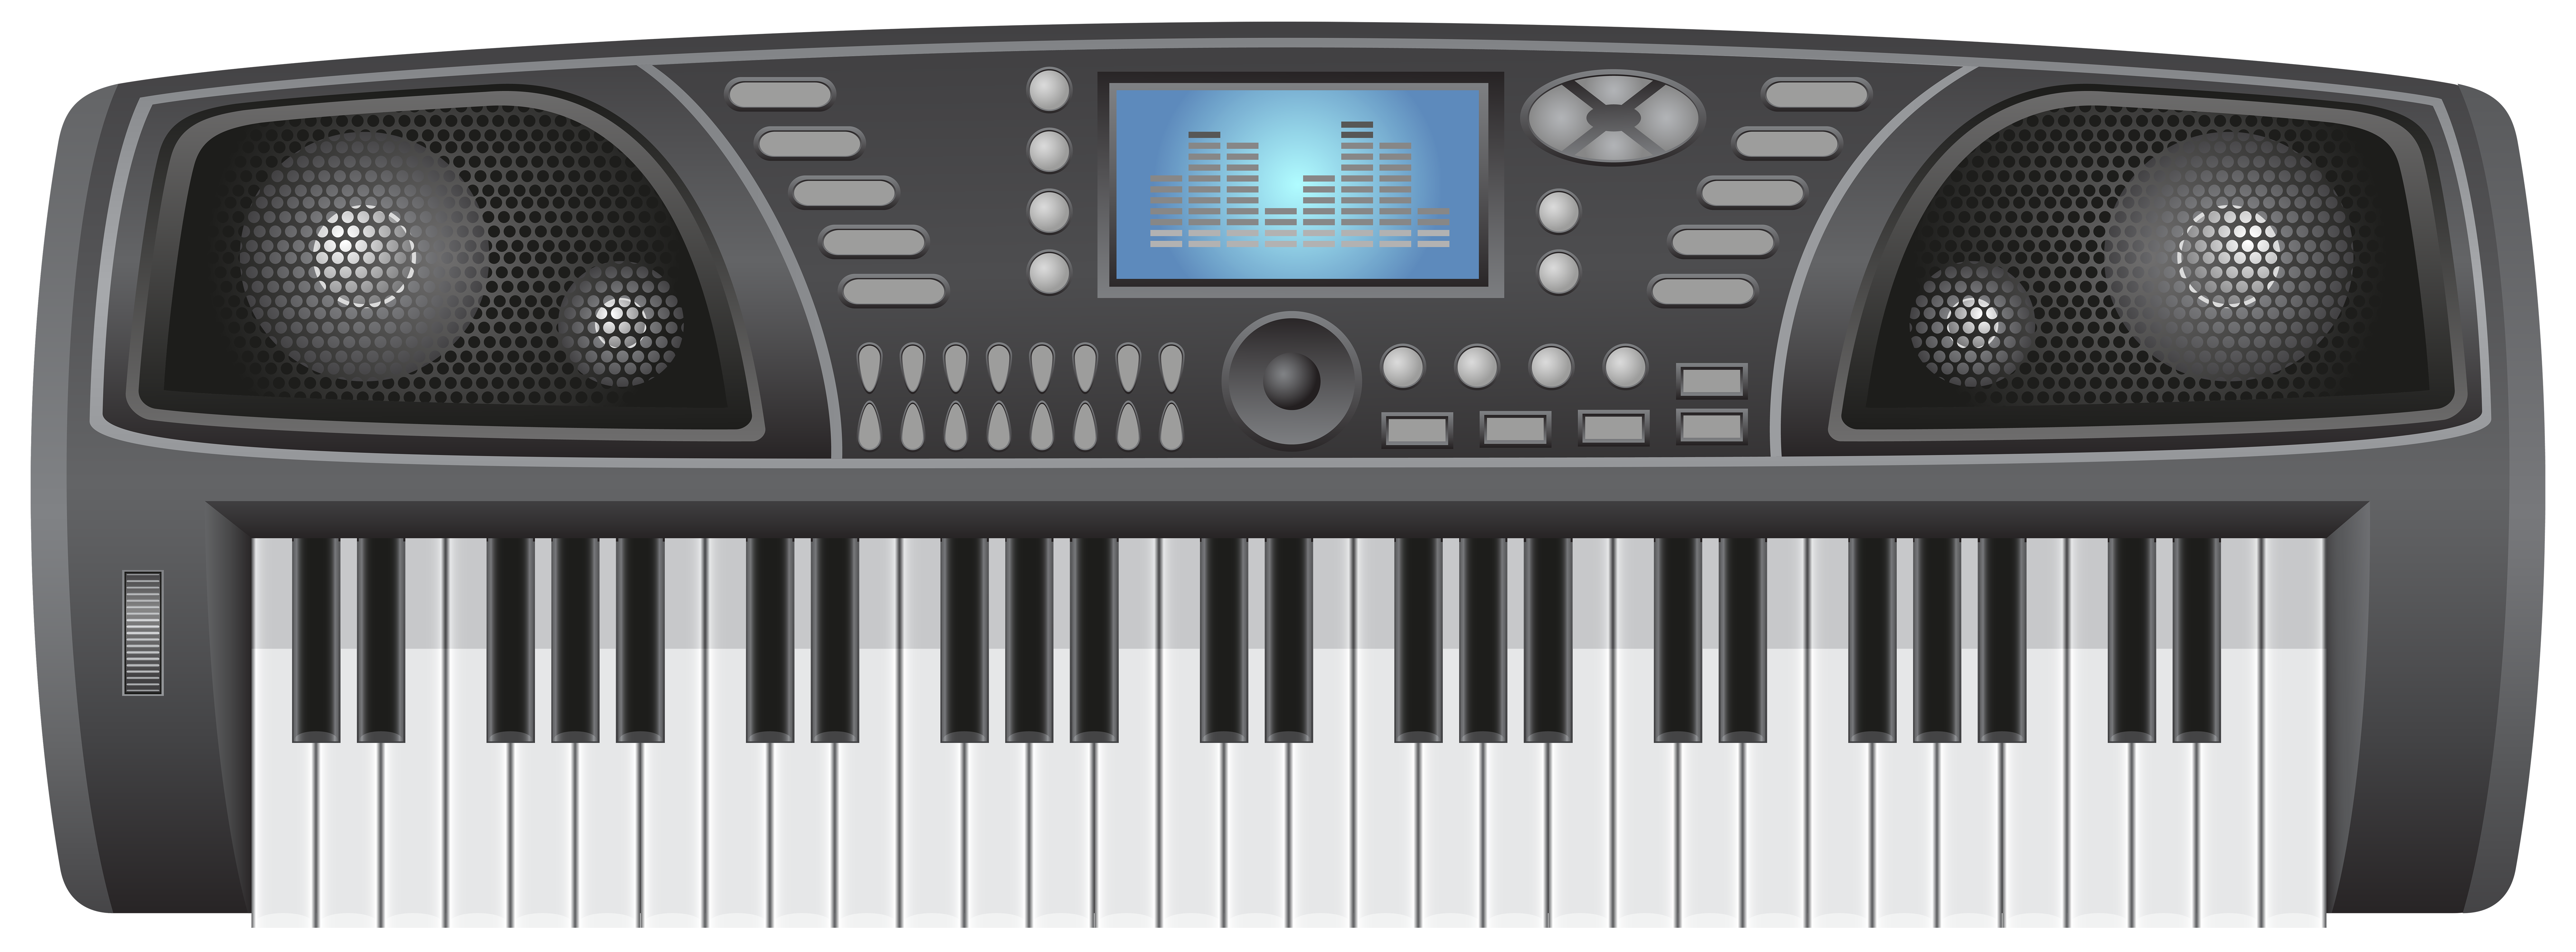 Synthesizer Transparent Clip Art Image.